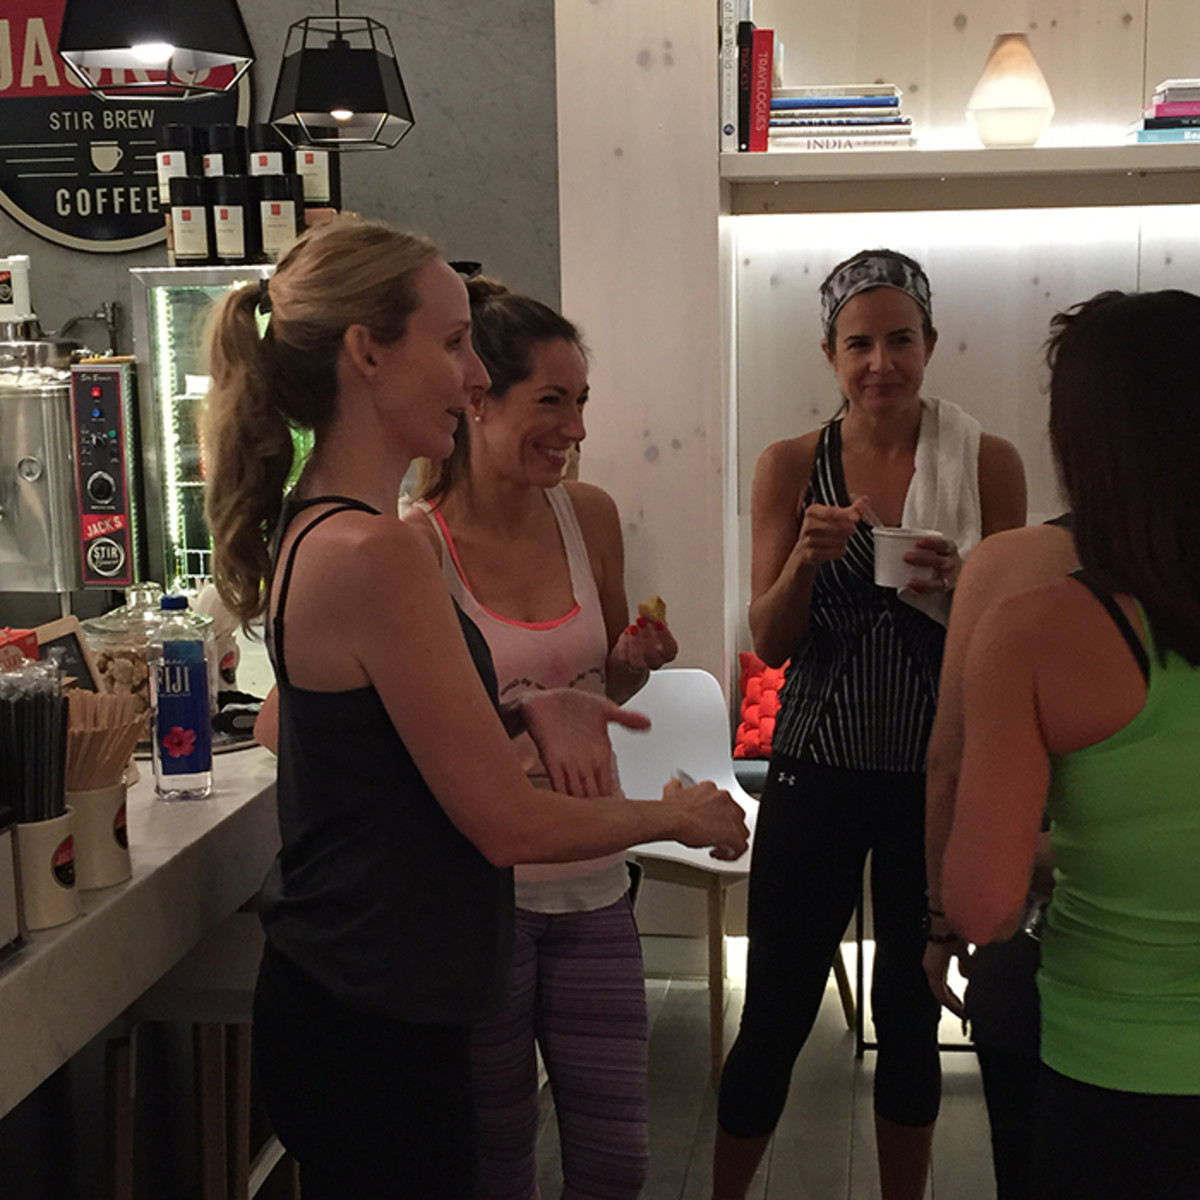 bloggers mingling